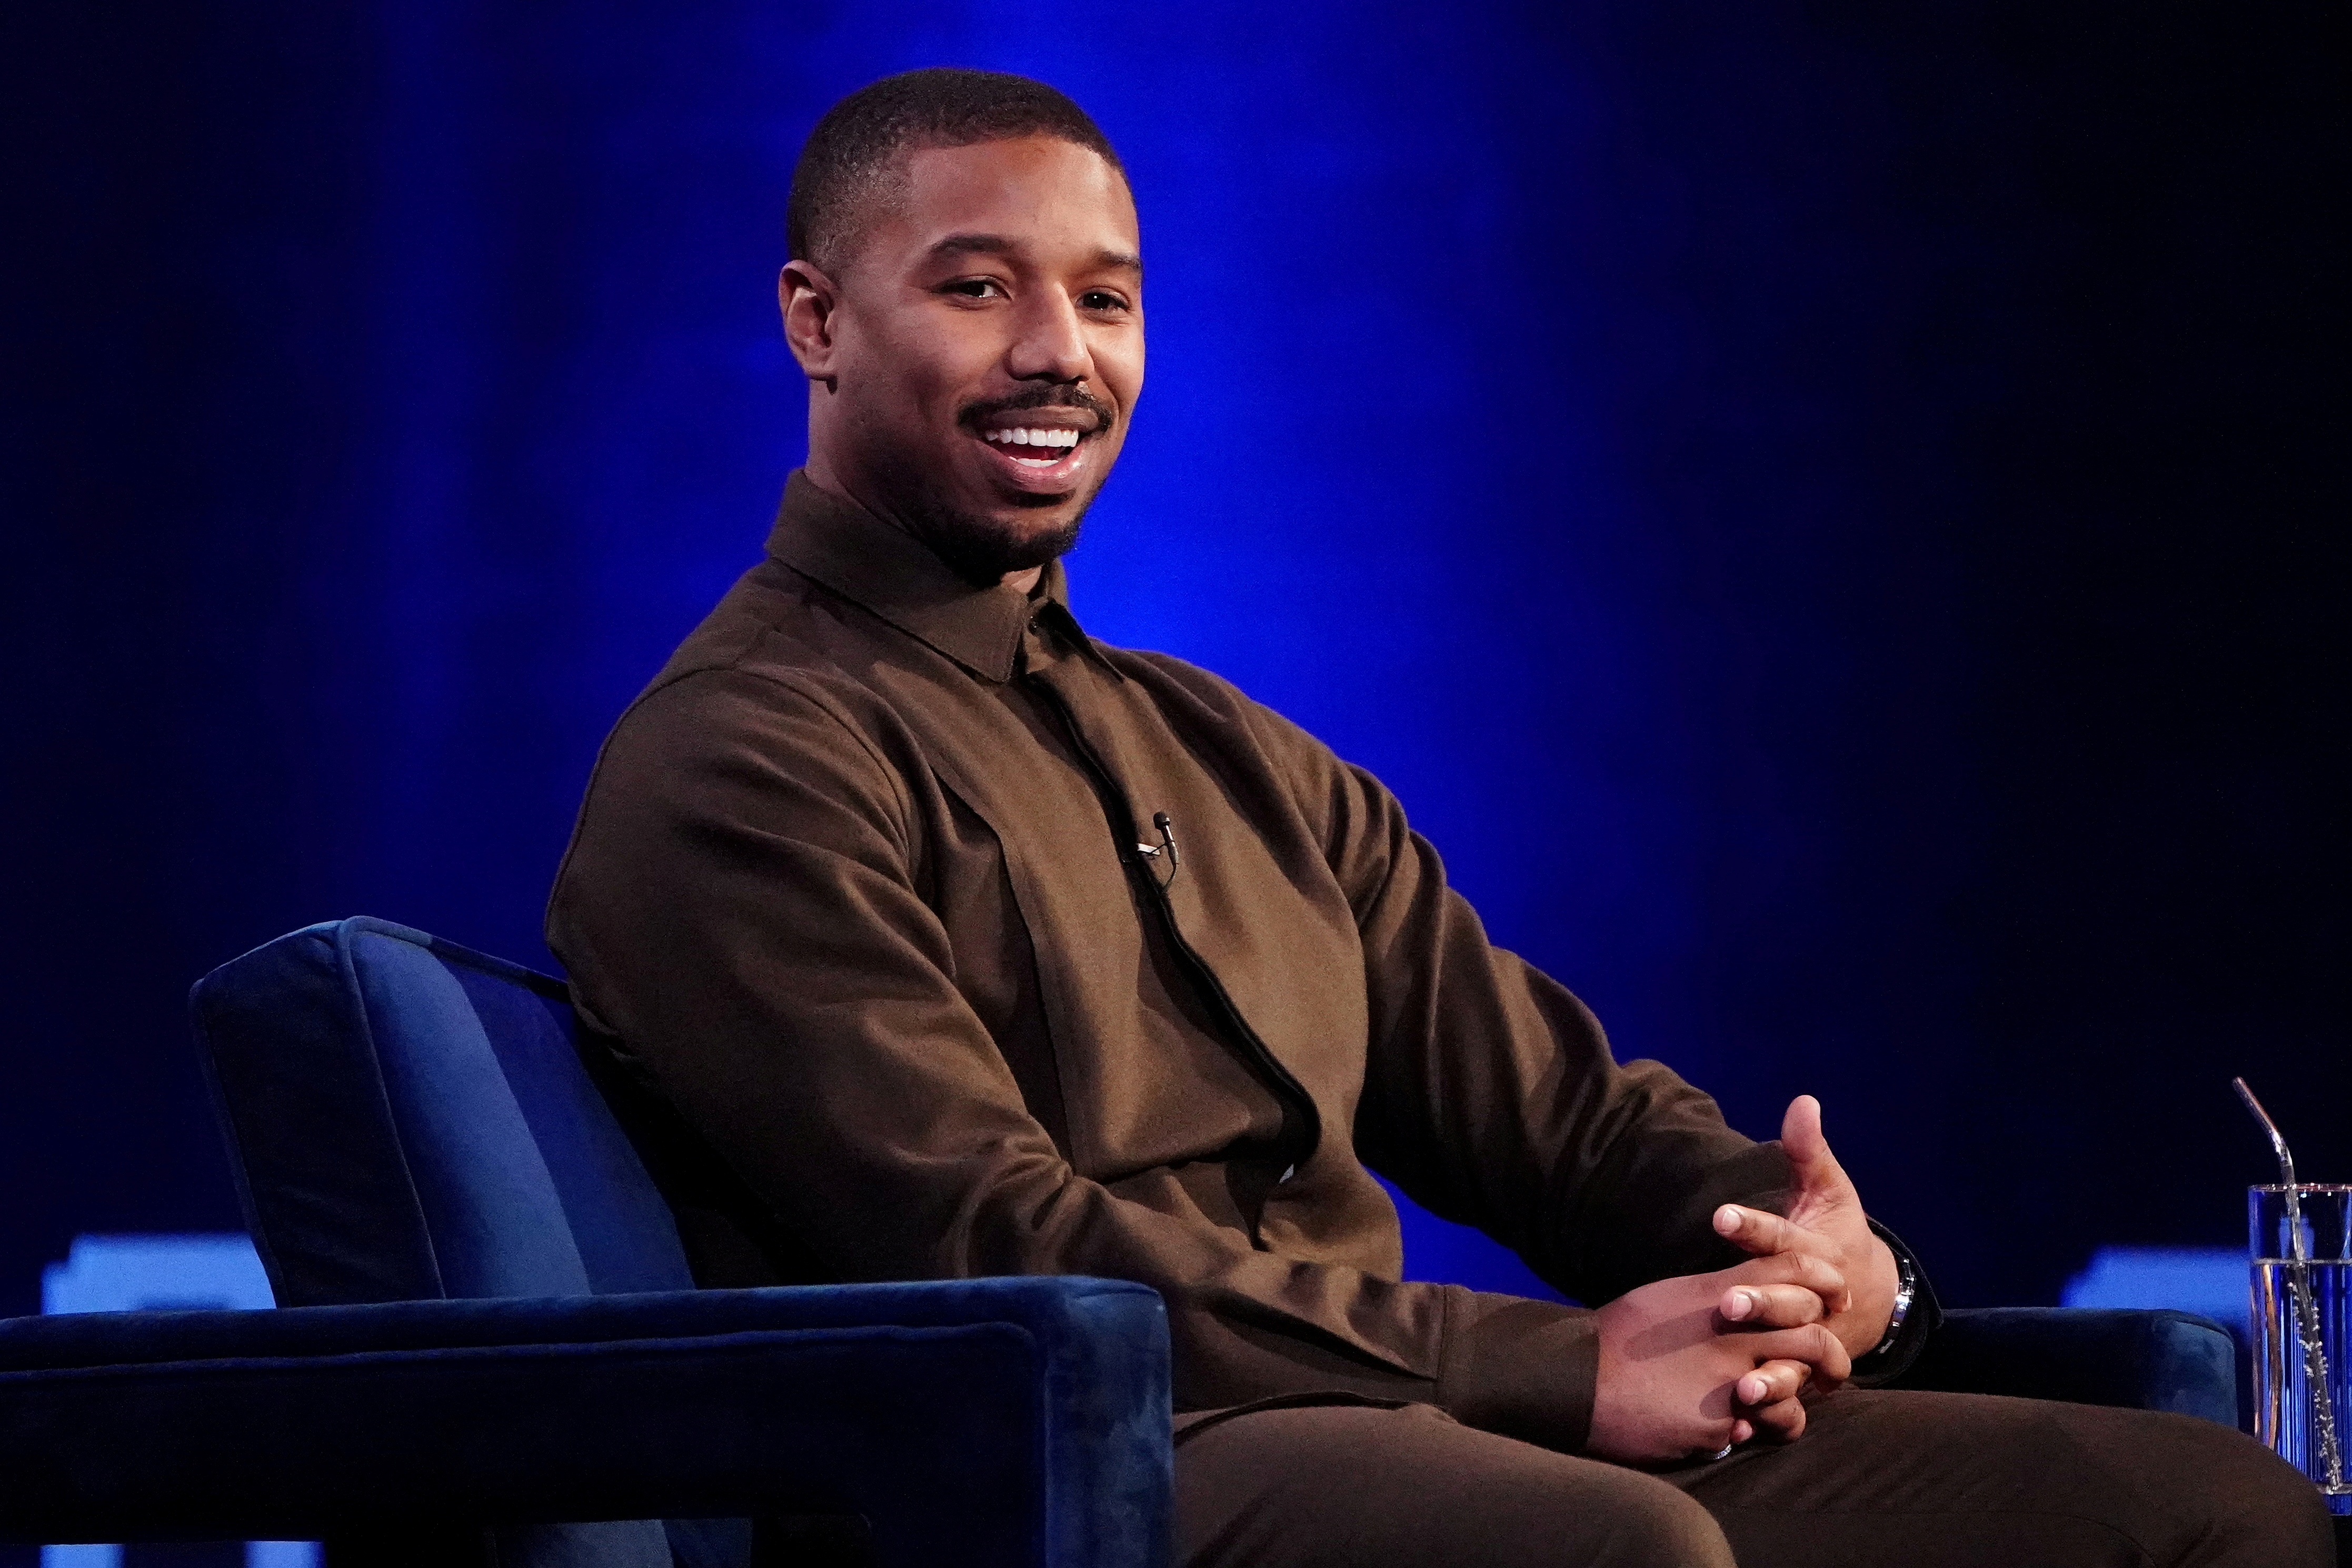 Actor Michael B. Jordan speaks with Oprah Winfrey on stage during a taping of her TV show in the Manhattan borough of New York City, New York, U.S., February 5, 2019. REUTERS/Carlo Allegri/File Photo